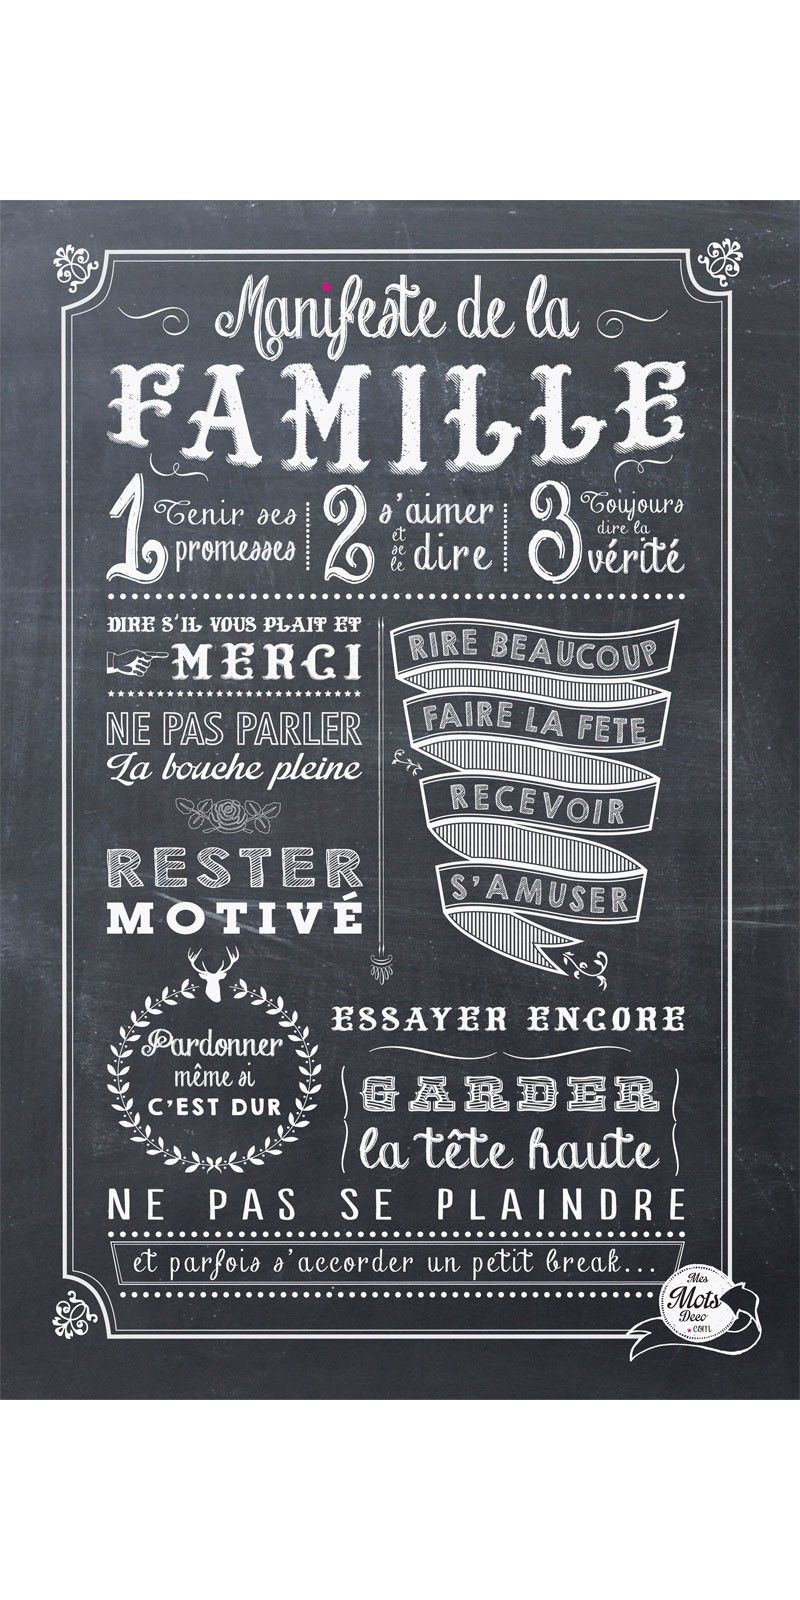 manifeste de la famille affiche mes mots deco citations pinterest la famille familles. Black Bedroom Furniture Sets. Home Design Ideas